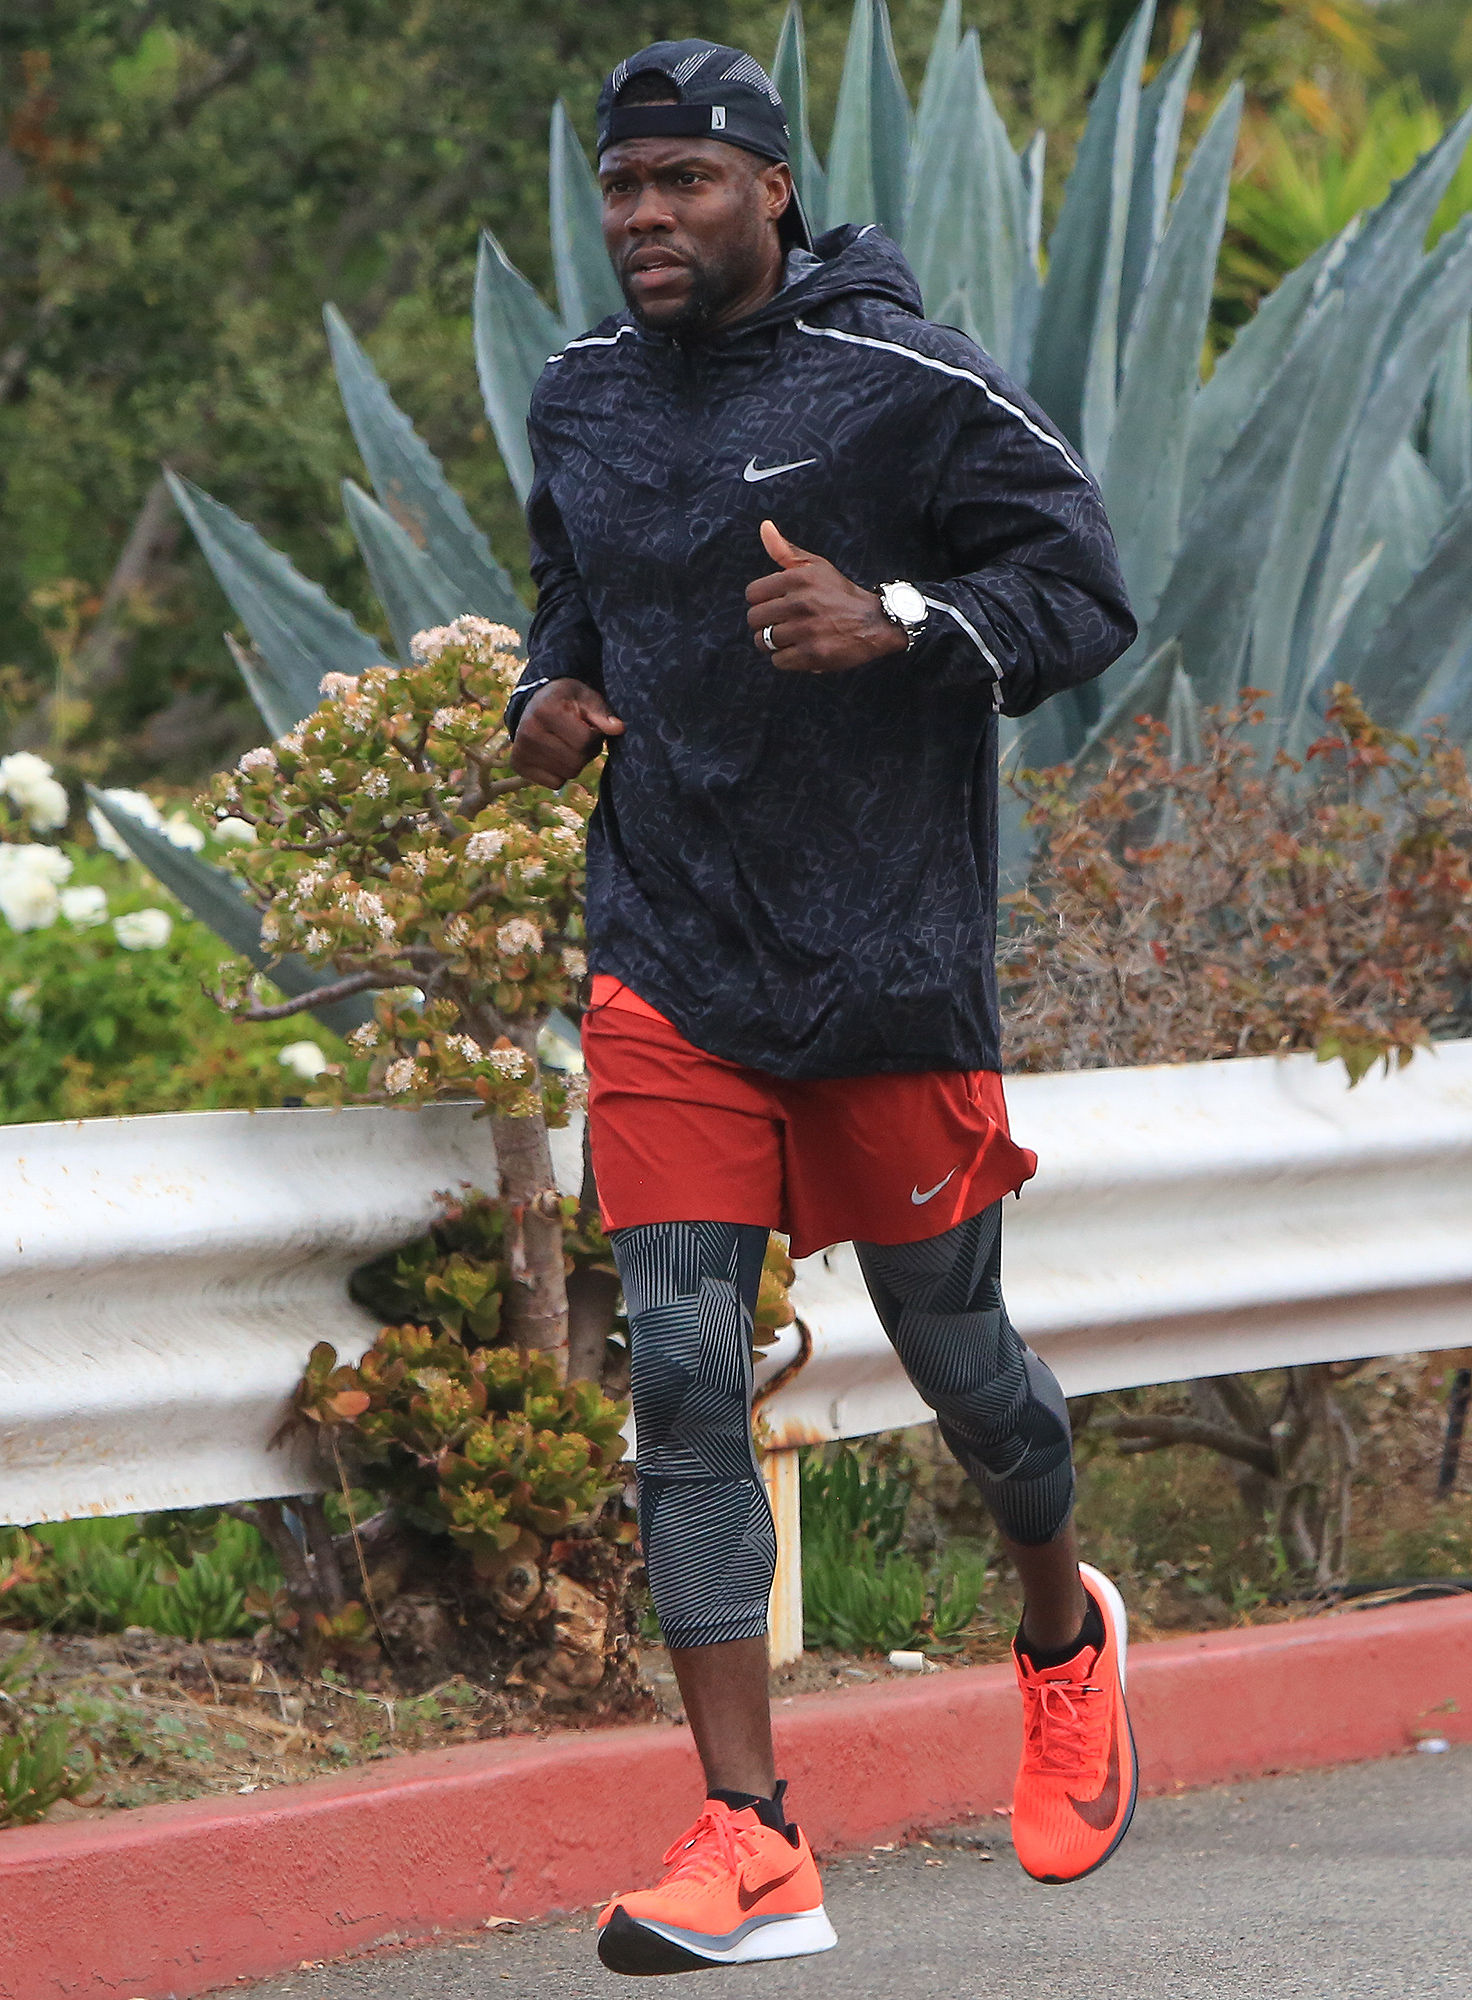 EXCLUSIVE: Comedian Kevin Hart works up a sweat as he is spotted running near the Santa Monica Steps in Santa Monica, Ca with his personal trainer